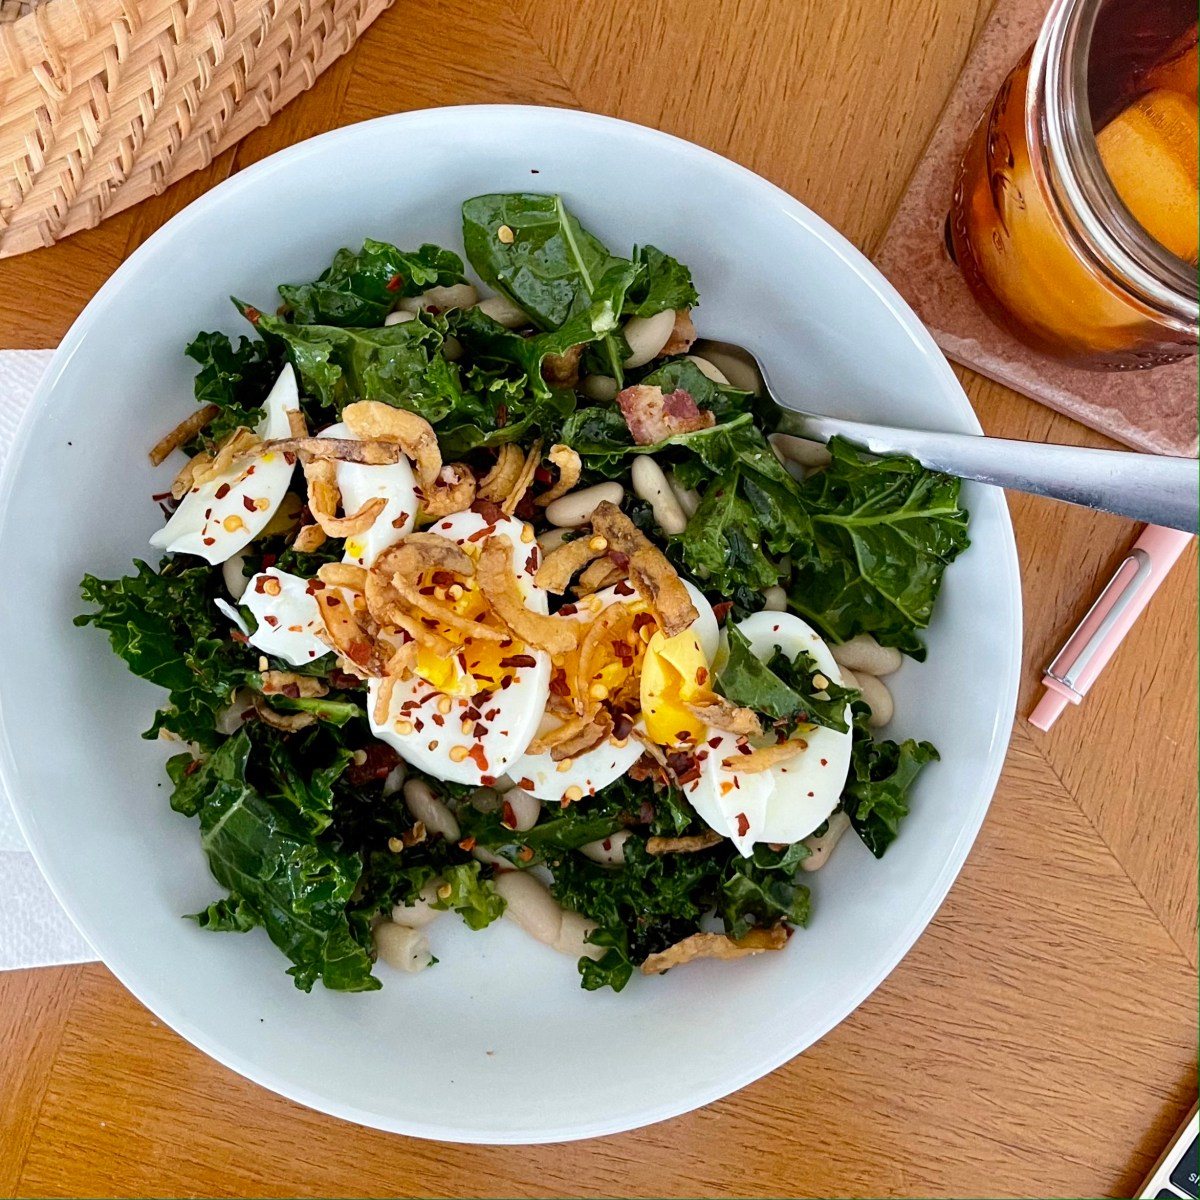 Easy white bean kale salad topped with sliced boiled egg and crispy onion in white ceramic bowl.